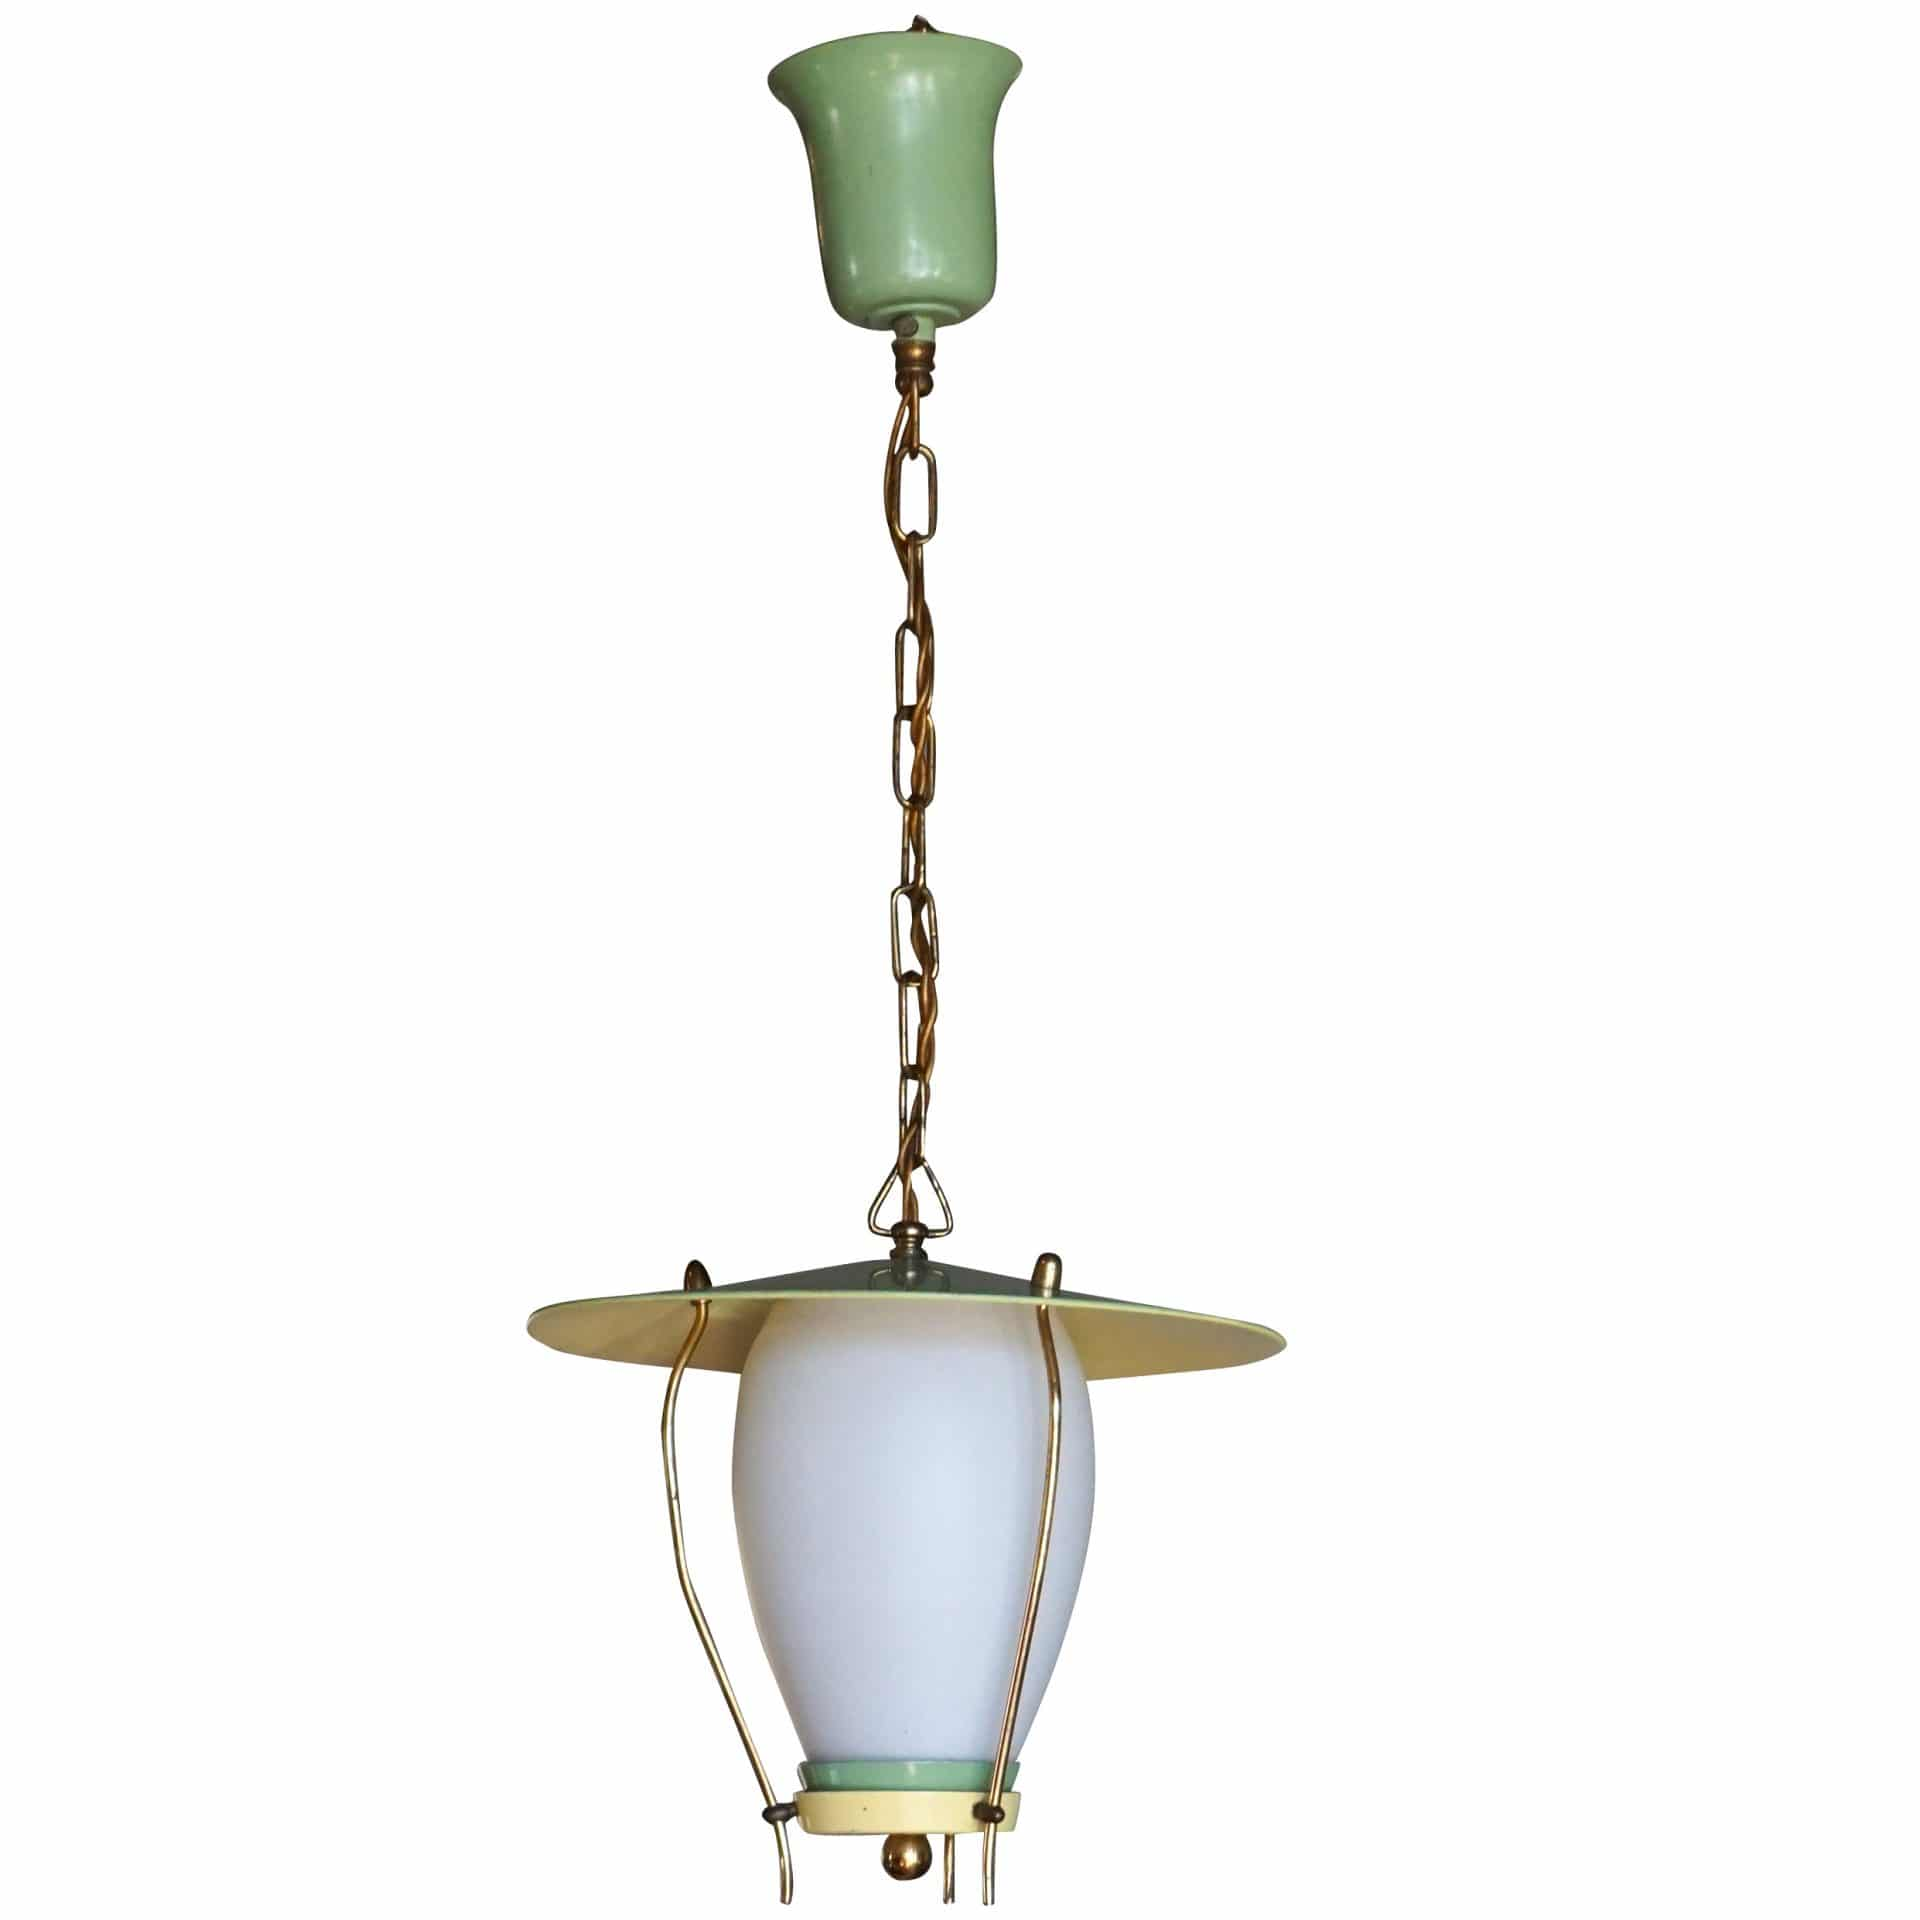 20th Century Italian Green Hanging Lantern by Stilnovo